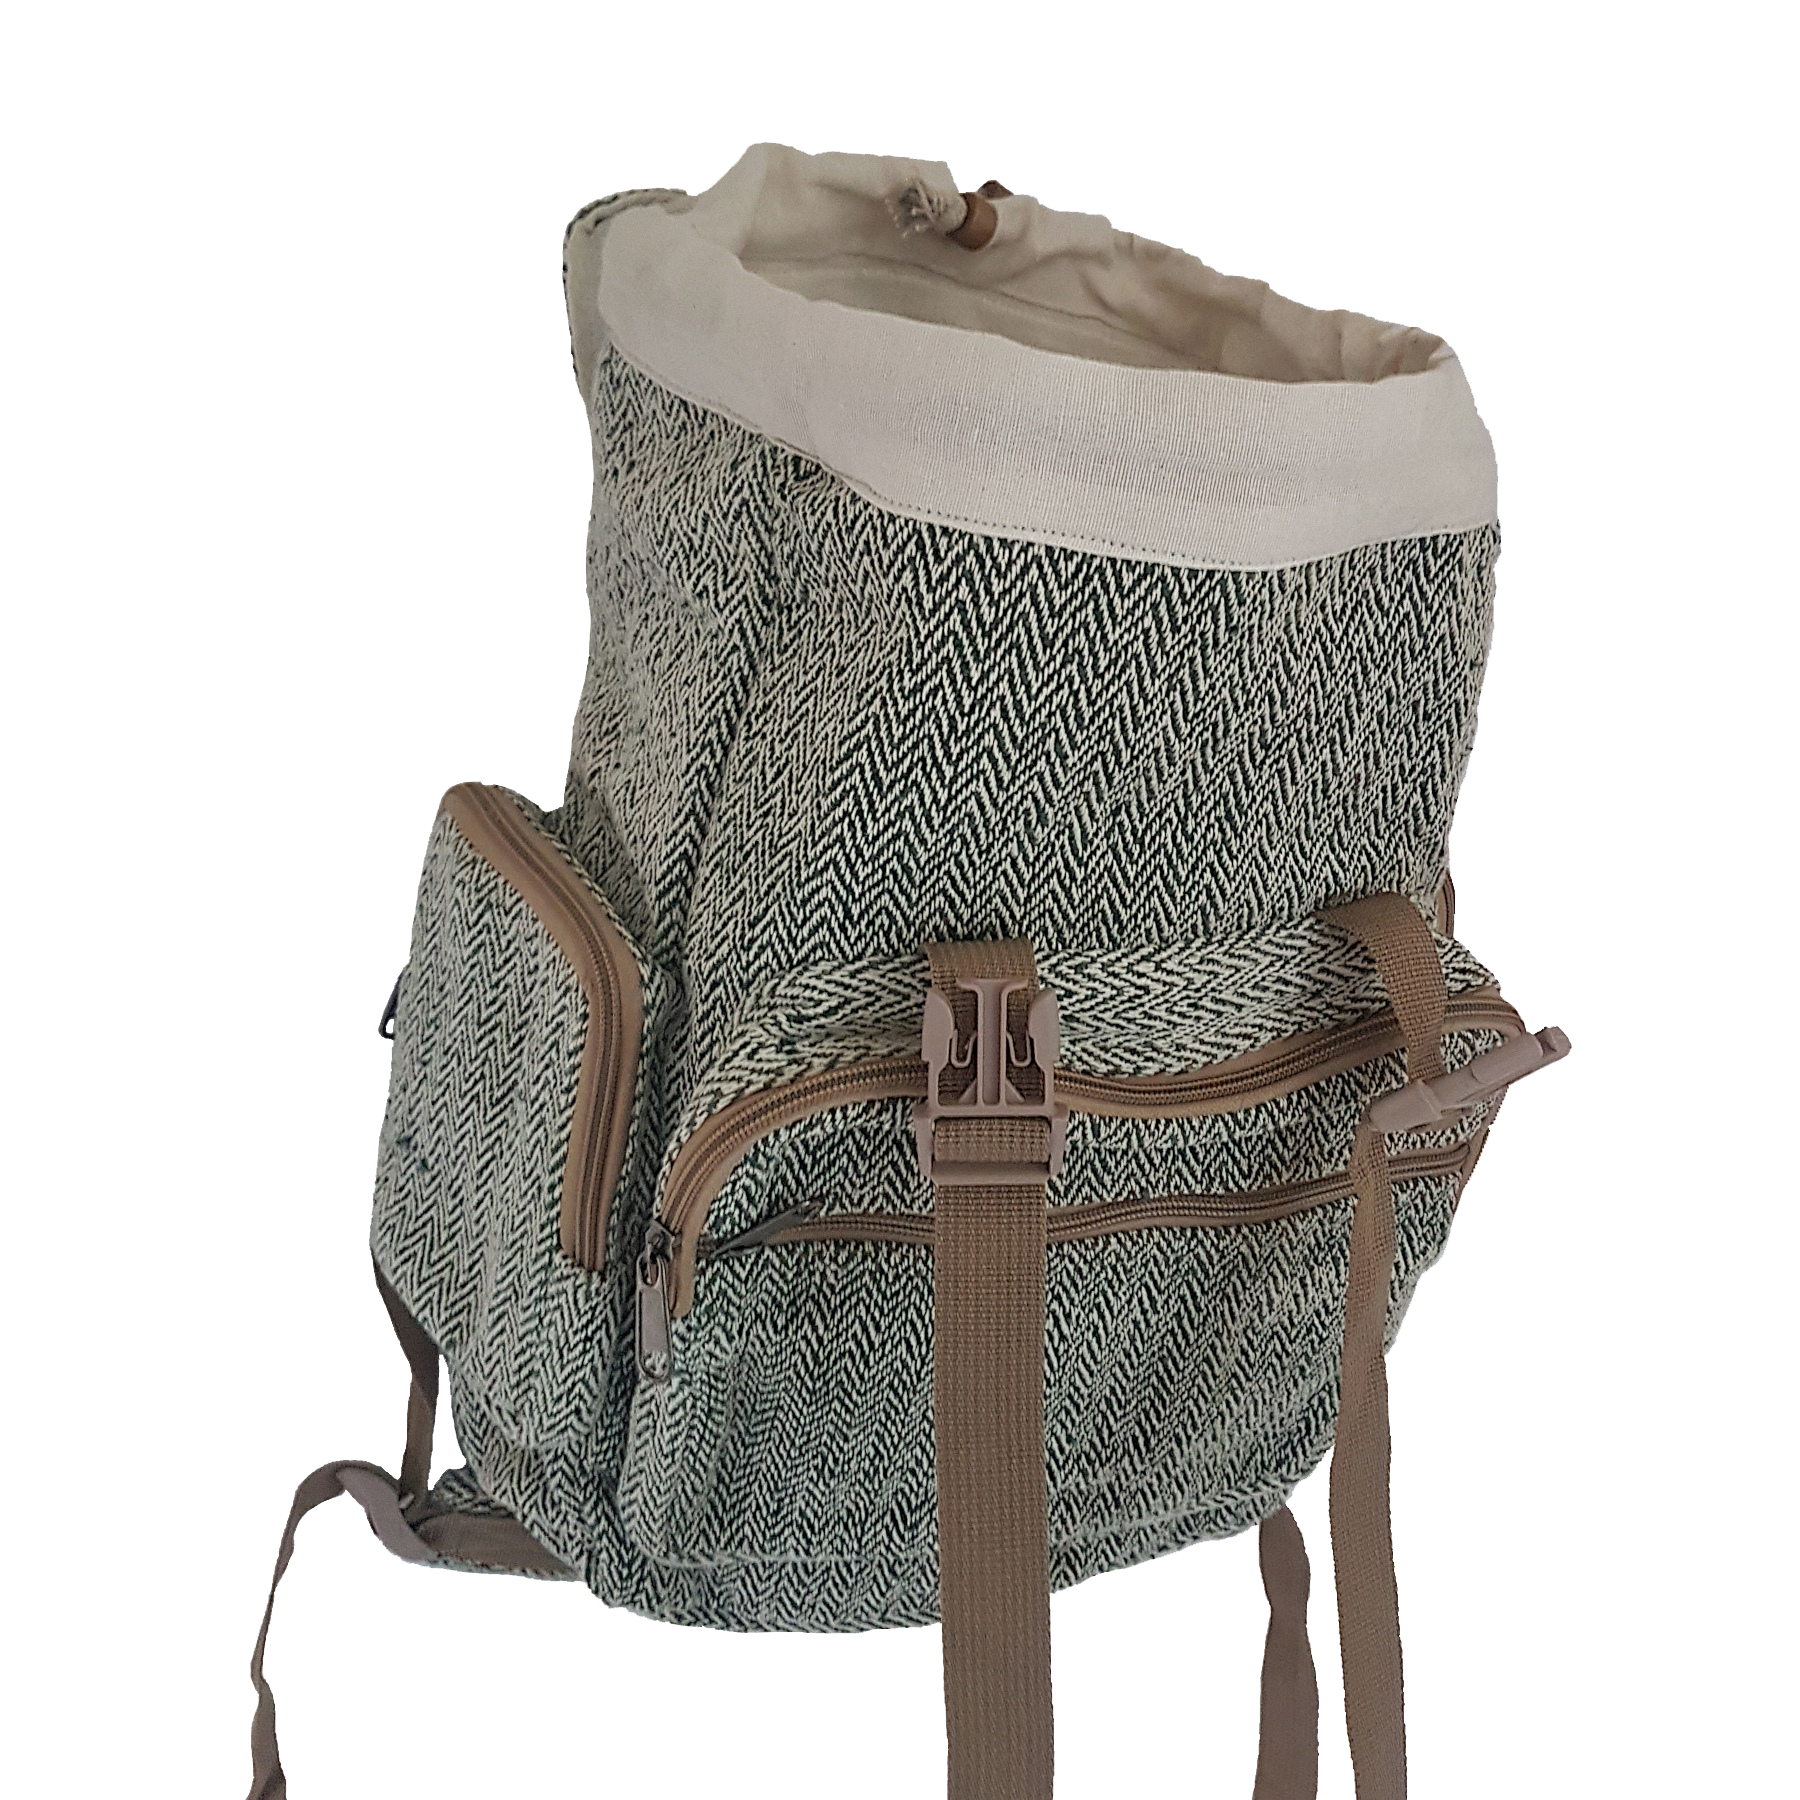 hempstyle_backpack_one_earth_hemp_hanf_rucksack_nepal_hippie_yoga_travel_reisen_reise_handmade_hangemacht_1